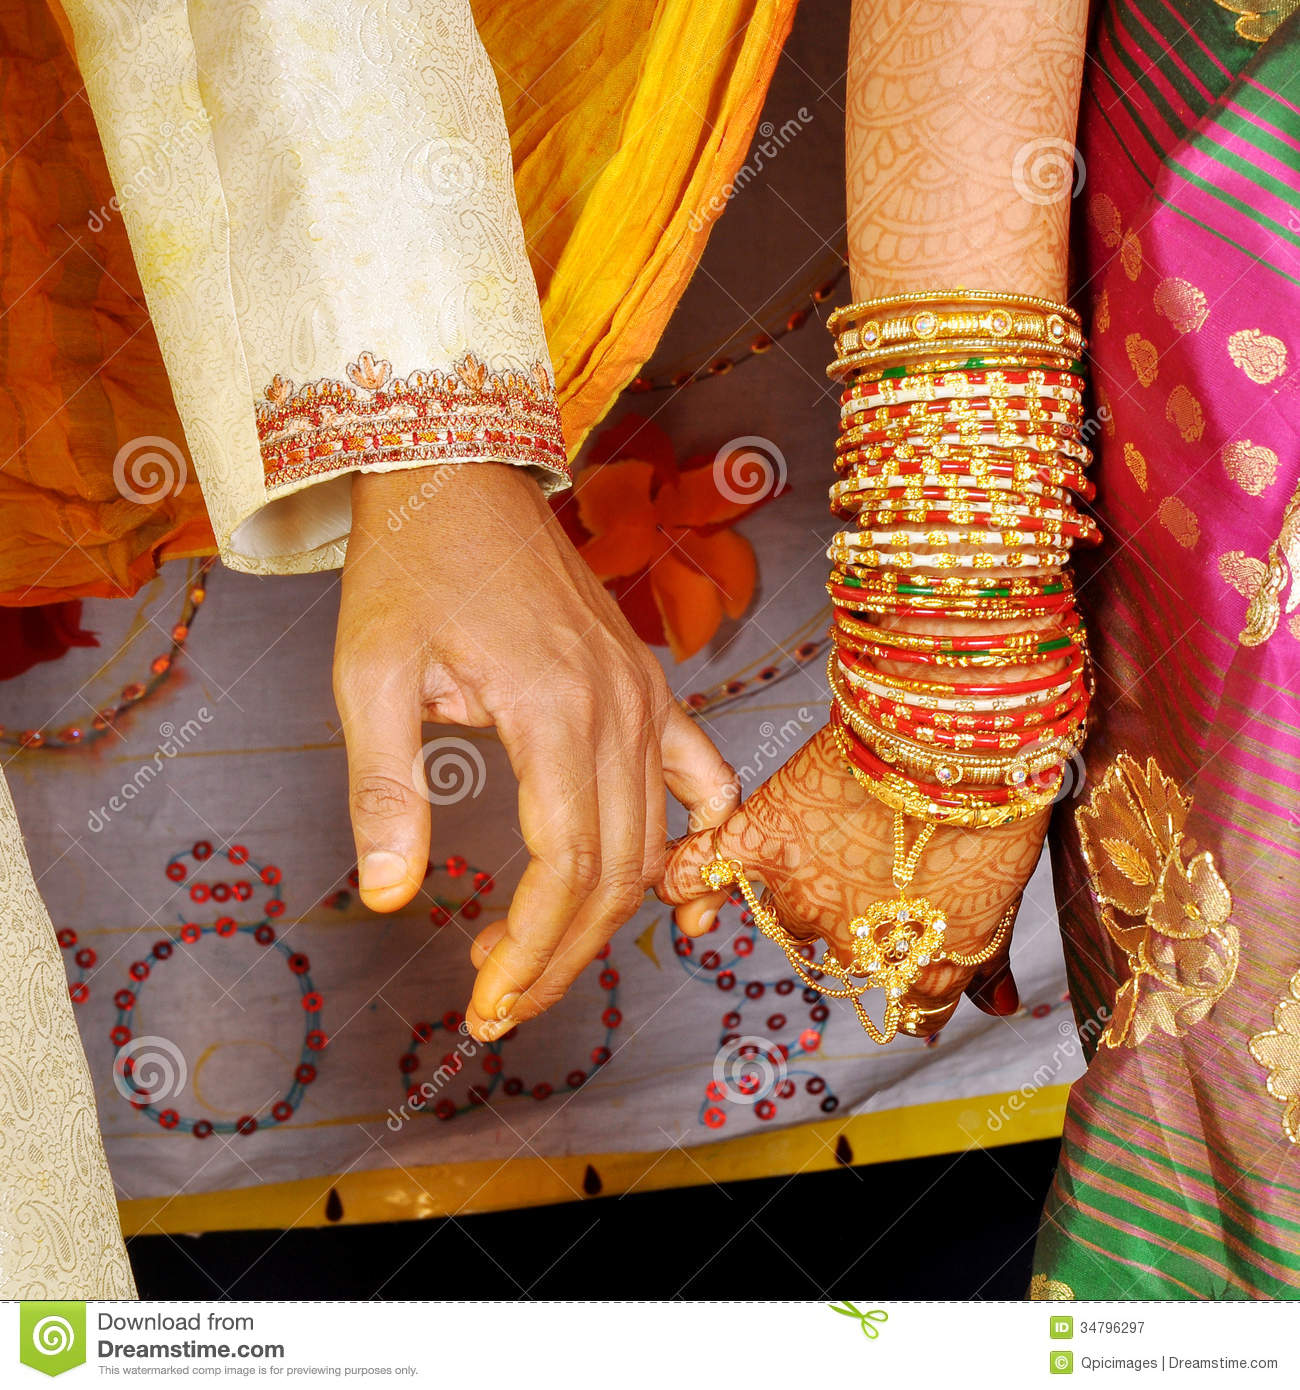 westhampton beach hindu dating site Find weddings & anniversary announcements including groom & bride, wedding dresses, wedding receptions, vows, photos, designers, flowers, love and marriage.